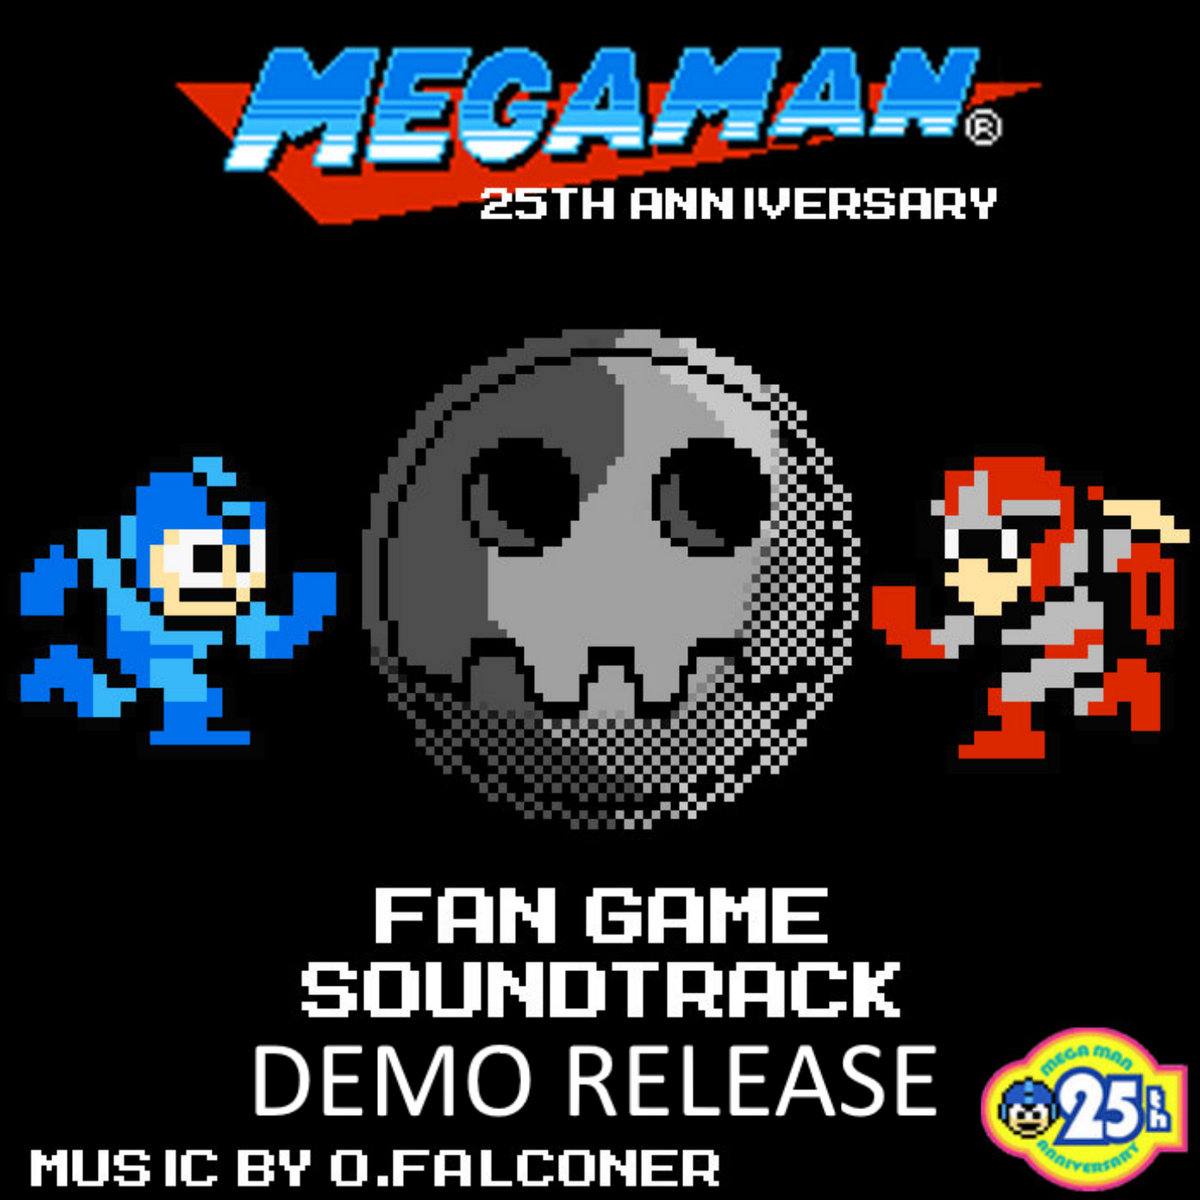 OUTDATED* MegaMan 25th Anniversary - DEMO RELEASE | Orie Falconer